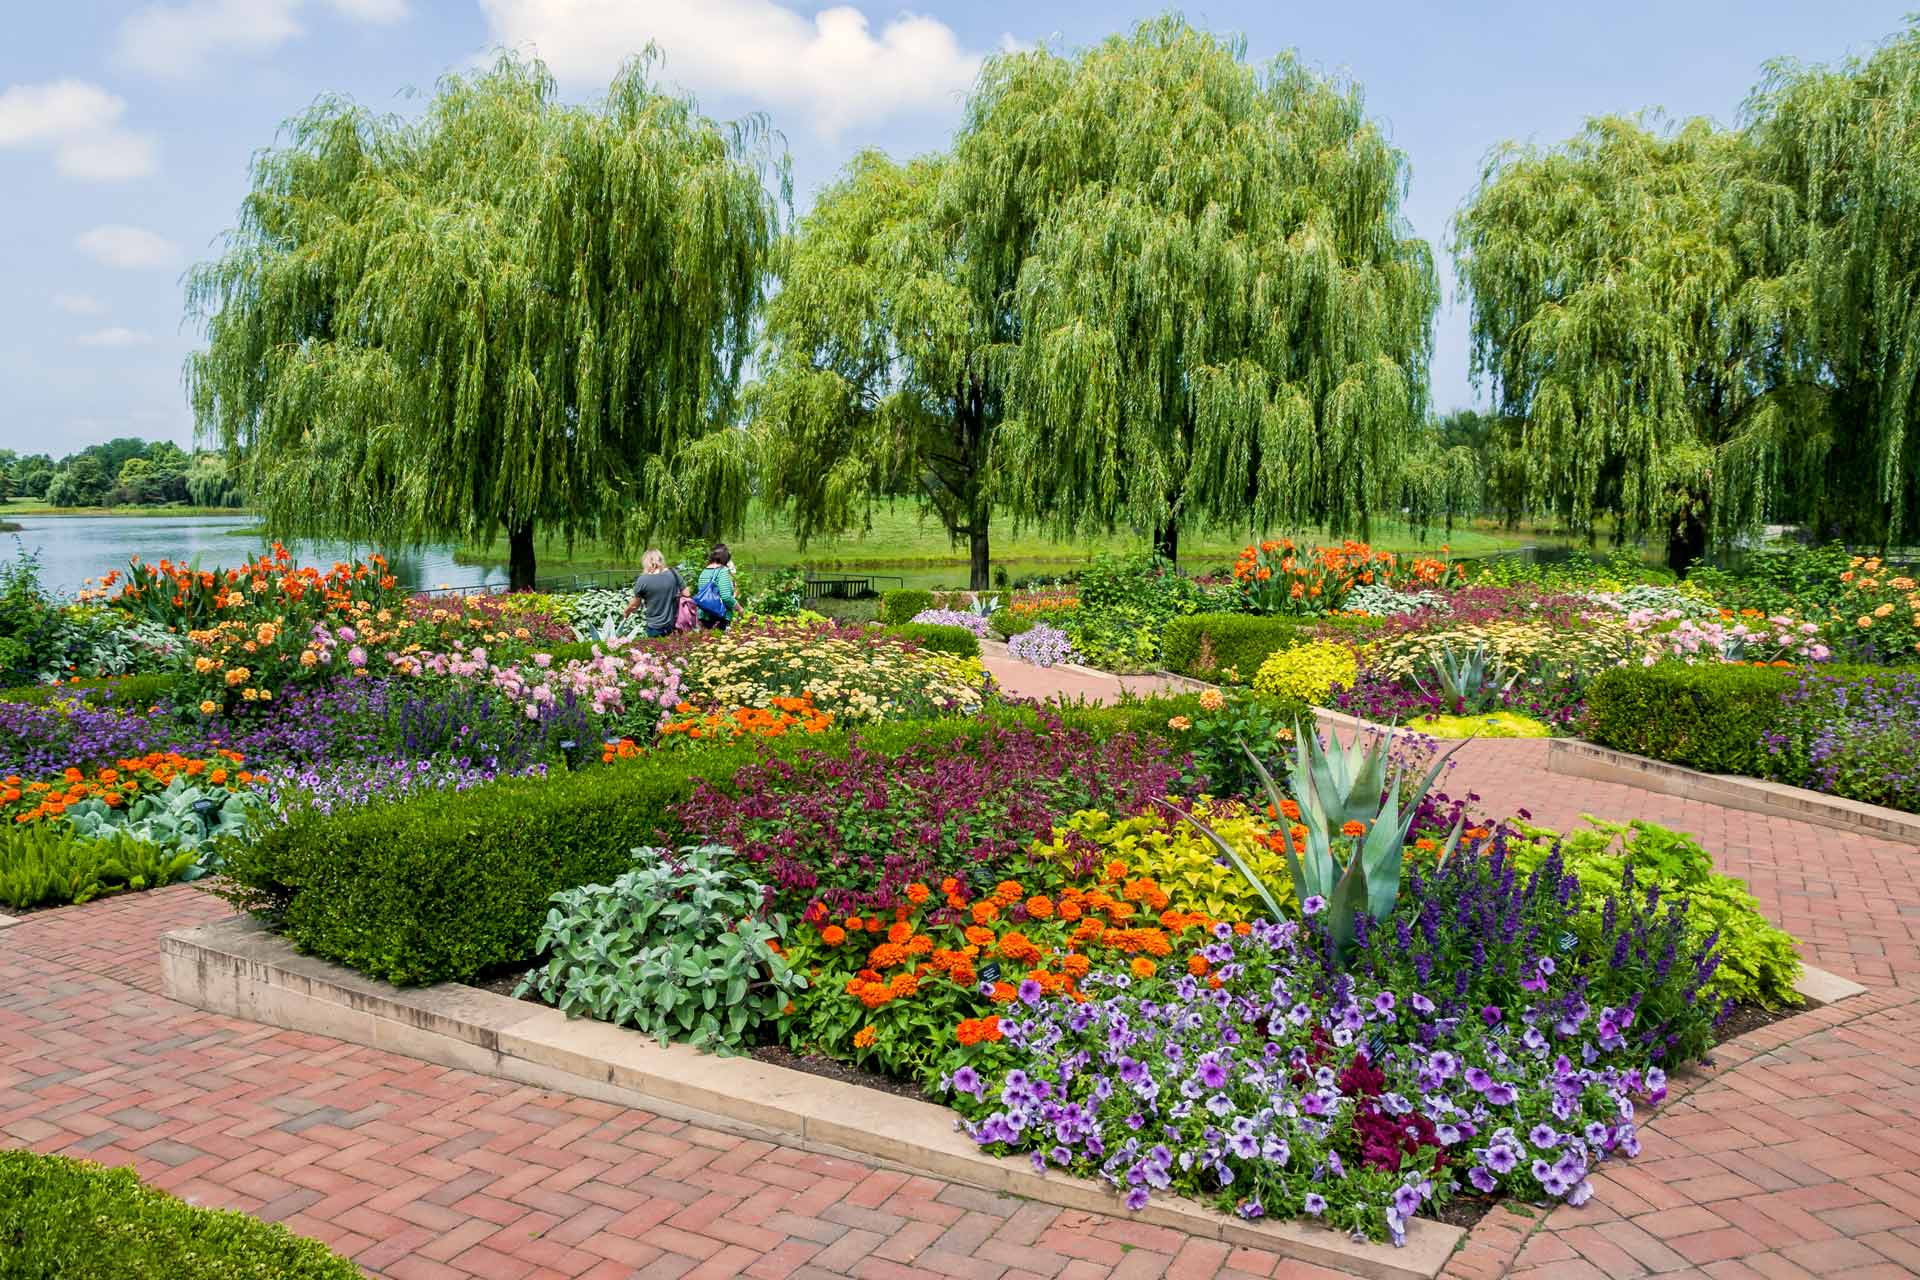 Getting The Most From Open Garden Tours